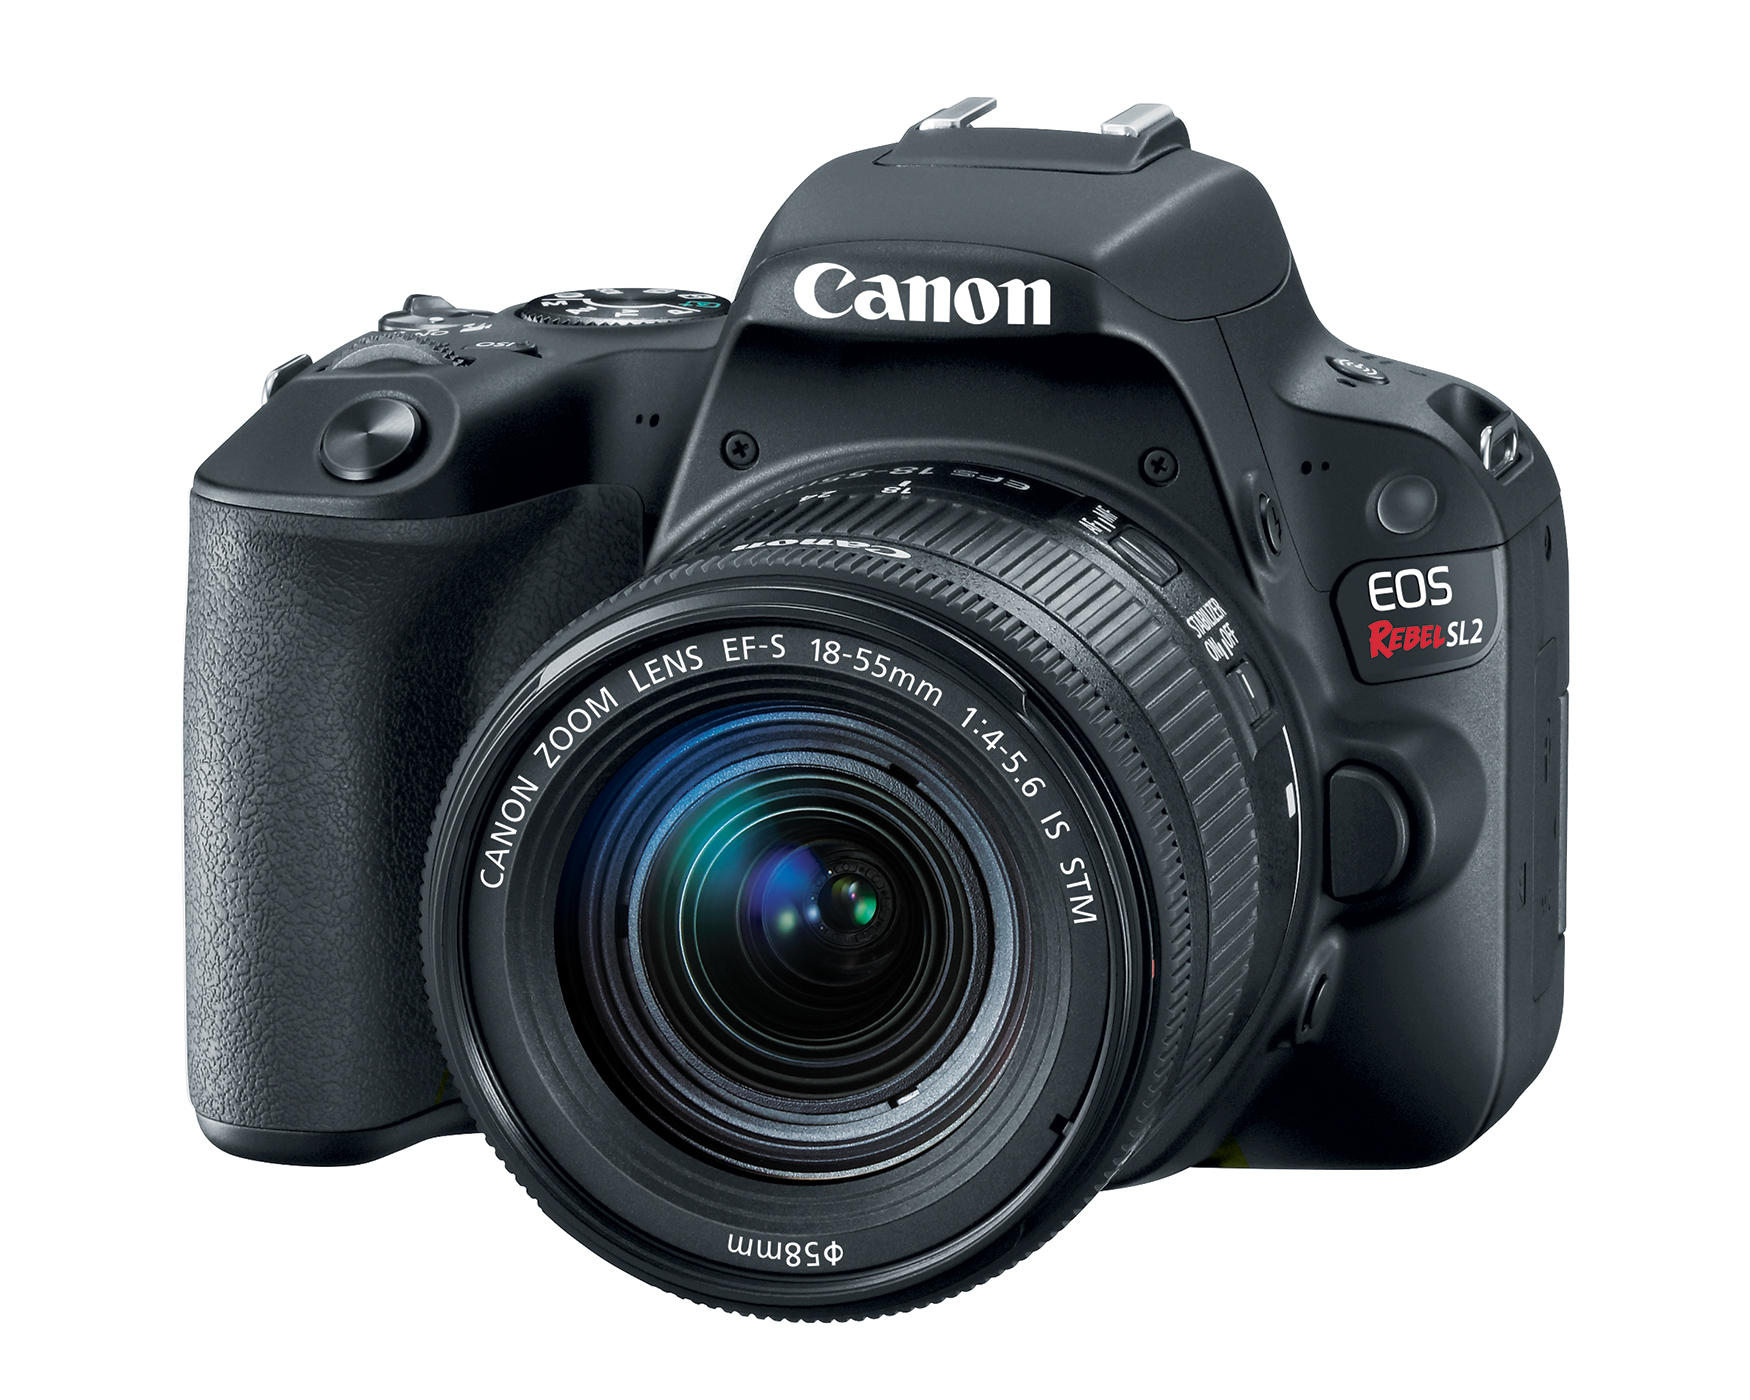 Canon EOS Rebel SL2 (with 18-55mm lens)